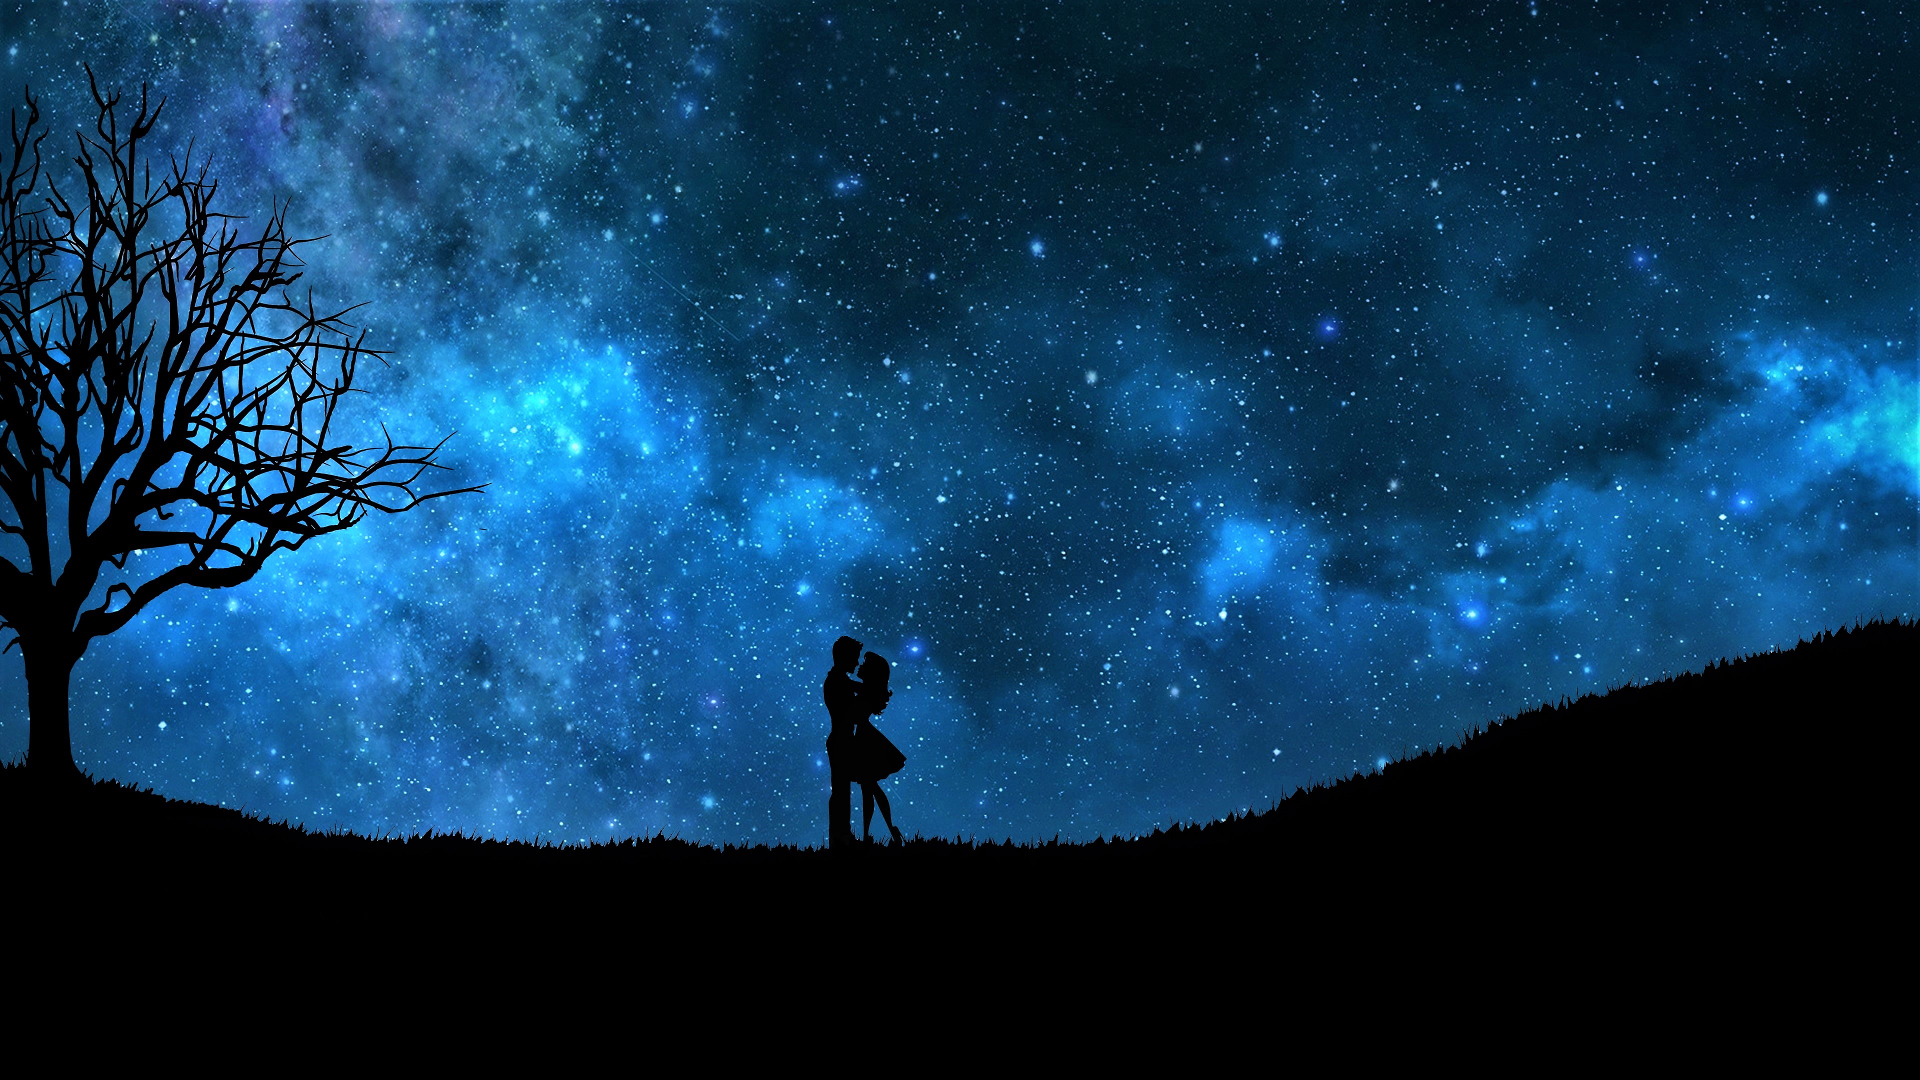 Lovers On A Starry Night Sky Hd Wallpaper Background Image